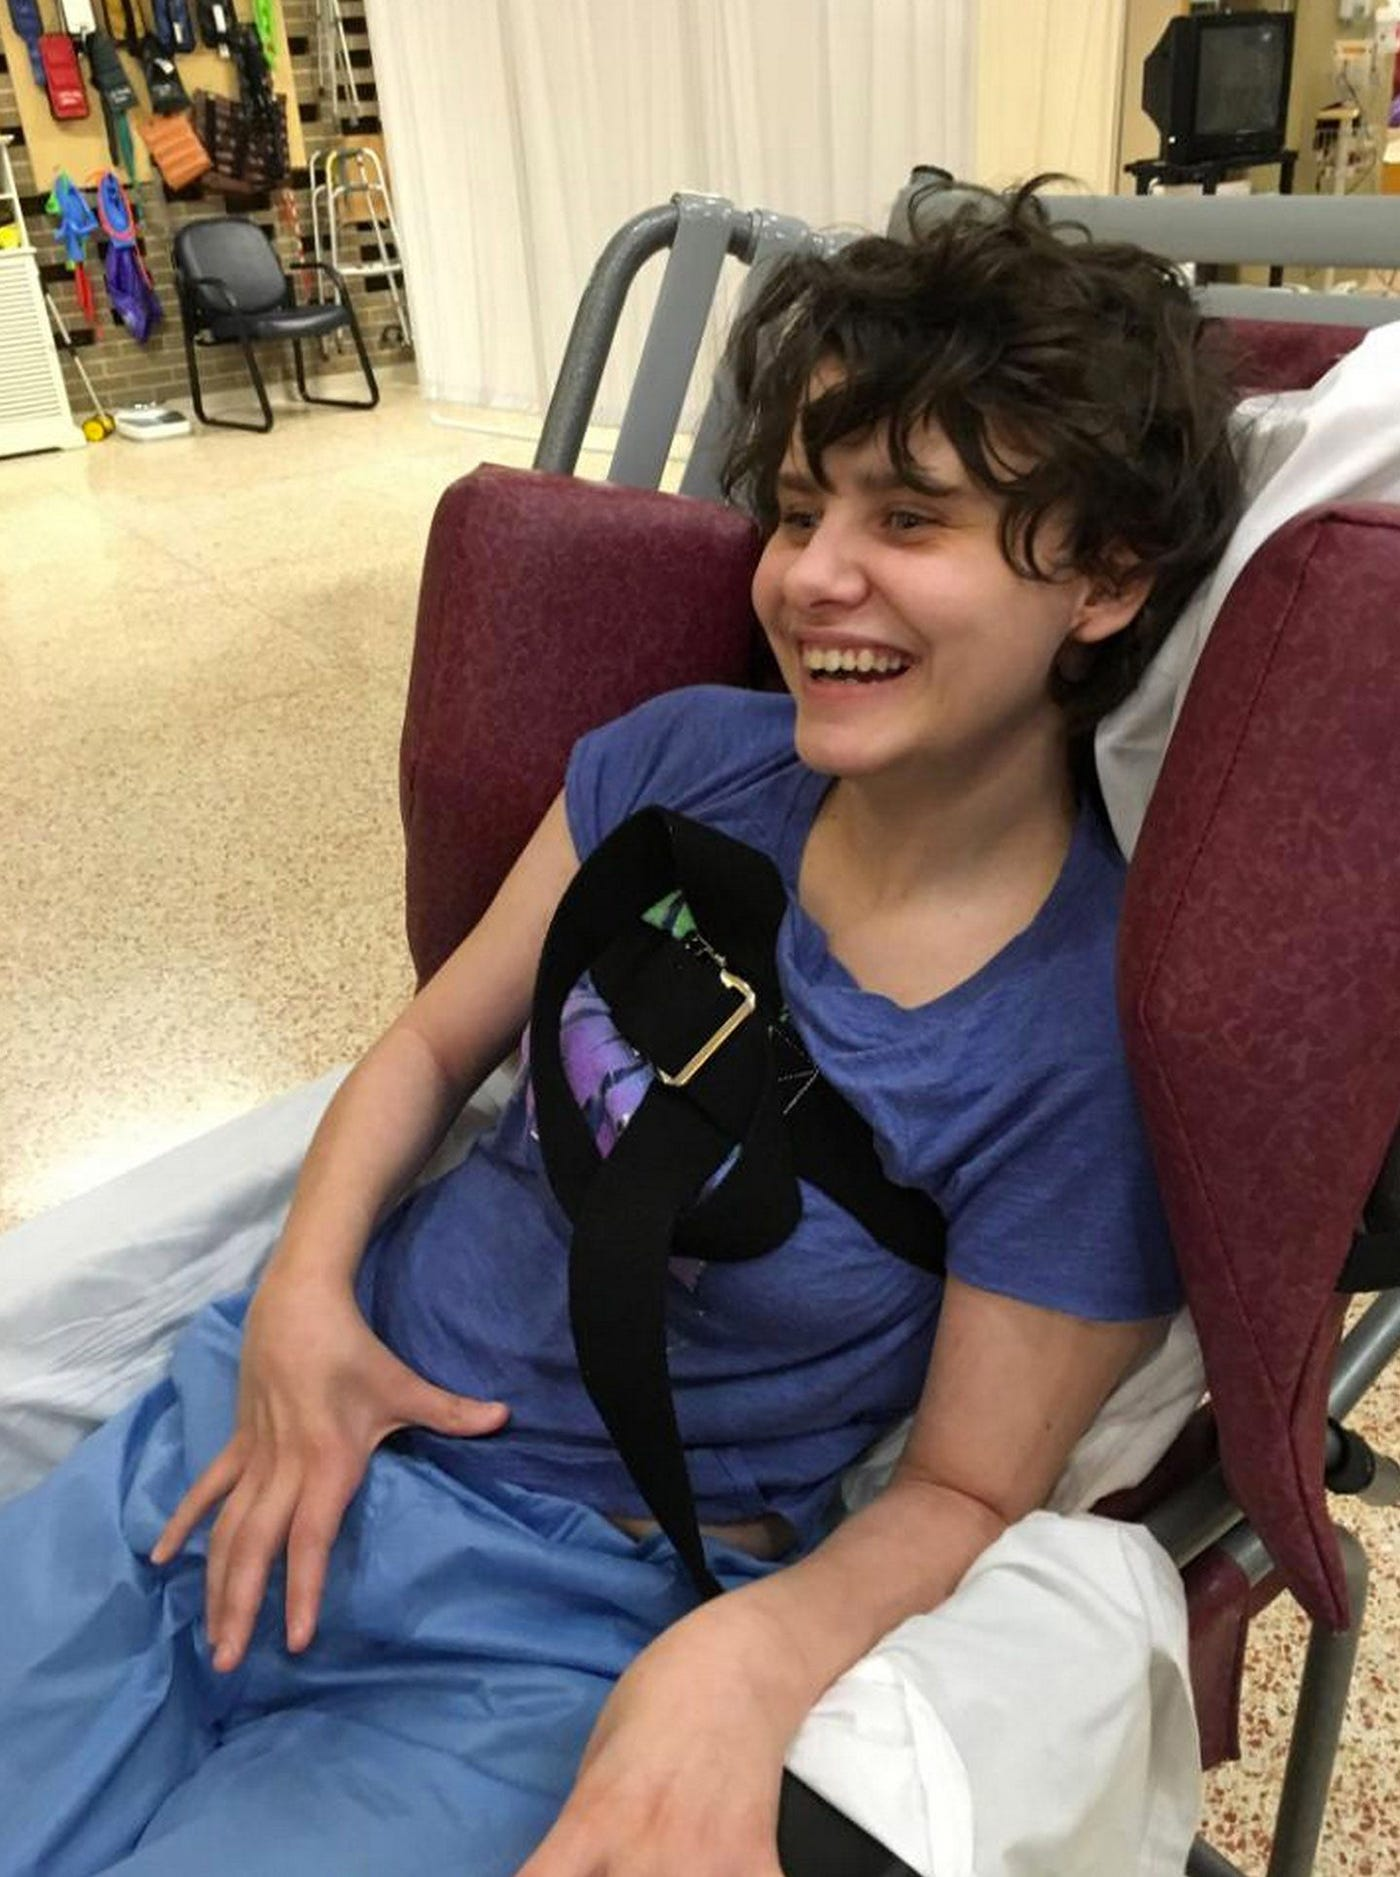 Wisconsin to pay $19M to teen inmate injured in suicide attempt